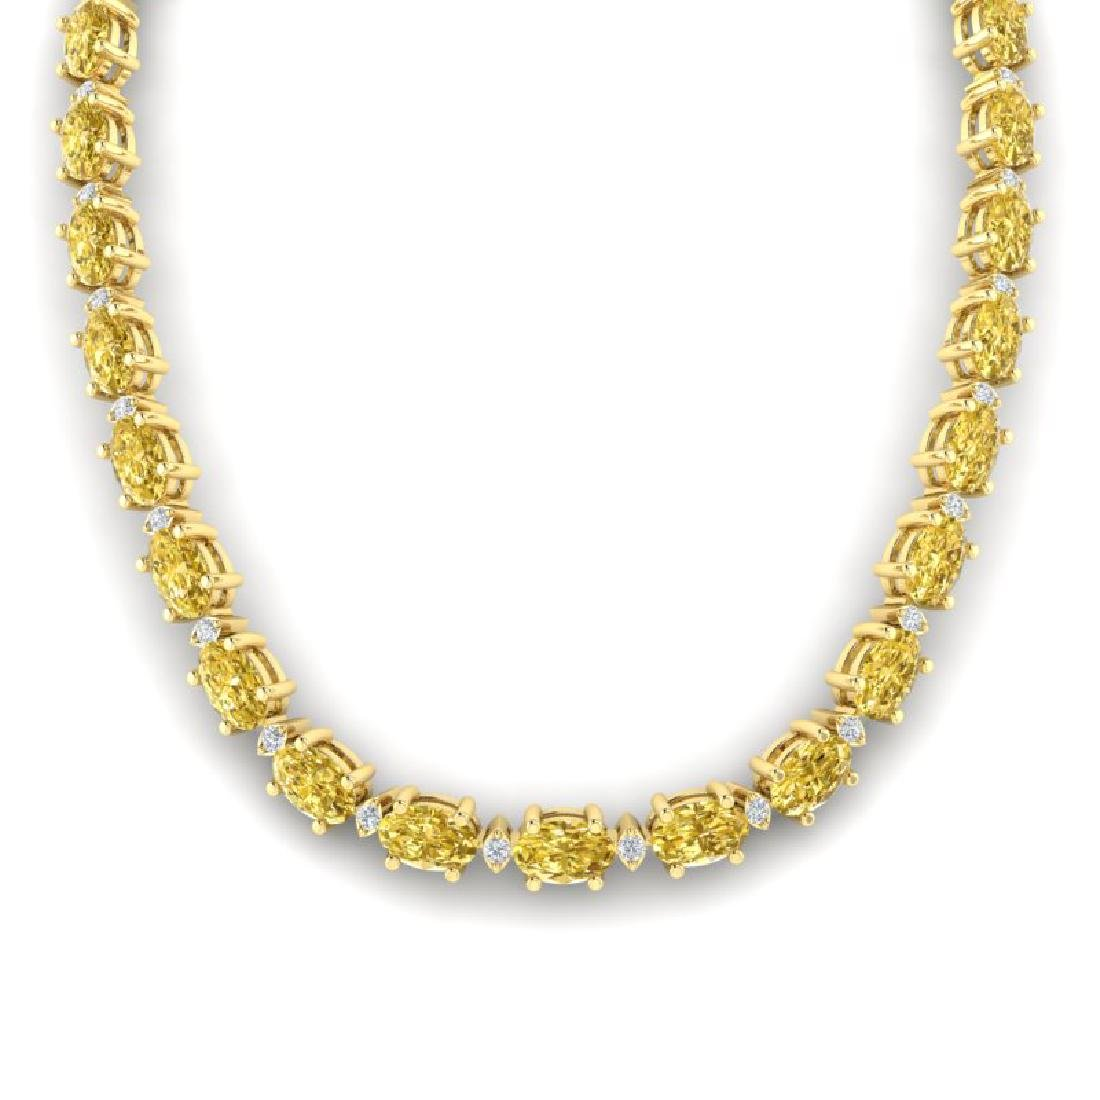 28 CTW Citrine & VS/SI Diamond Eternity Tennis Necklace - 3